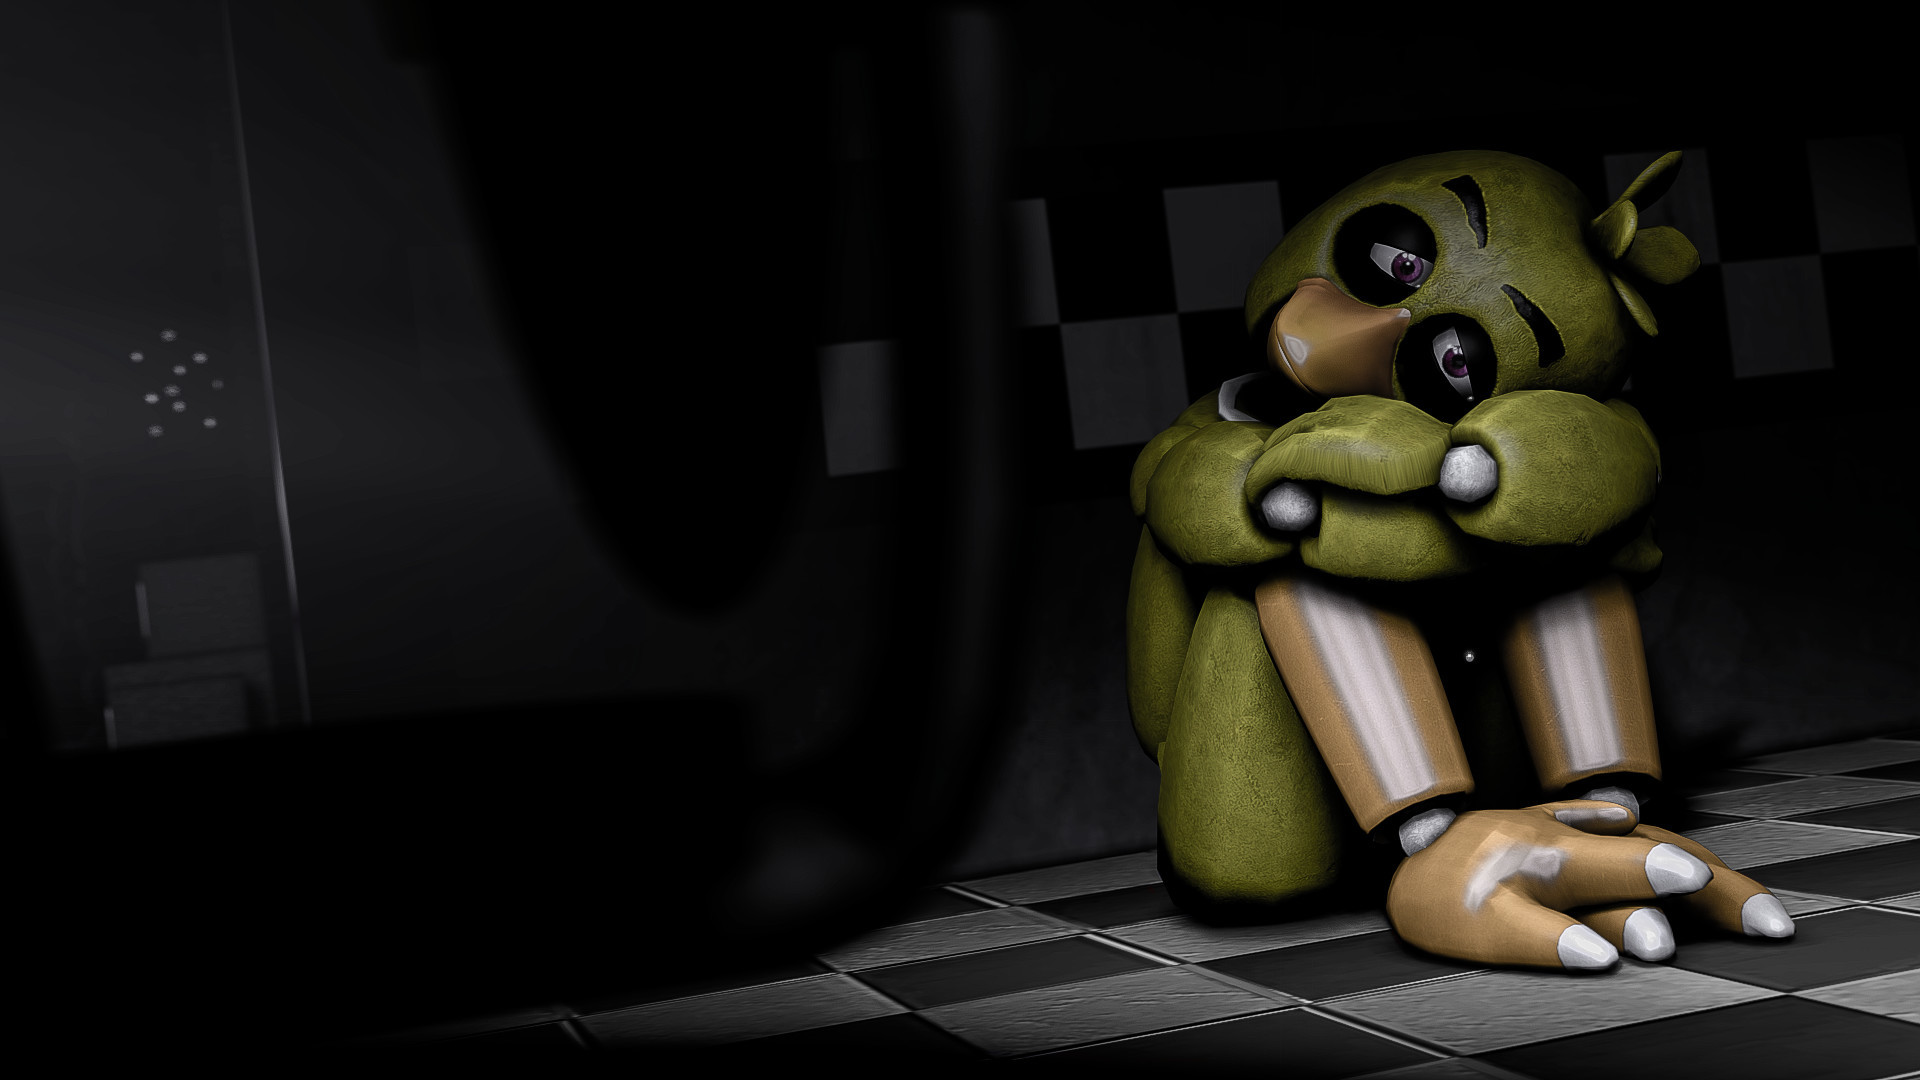 Res: 1920x1080,  Now I live with regret (SFM Wallpaper) by gold94chica on  DeviantArt